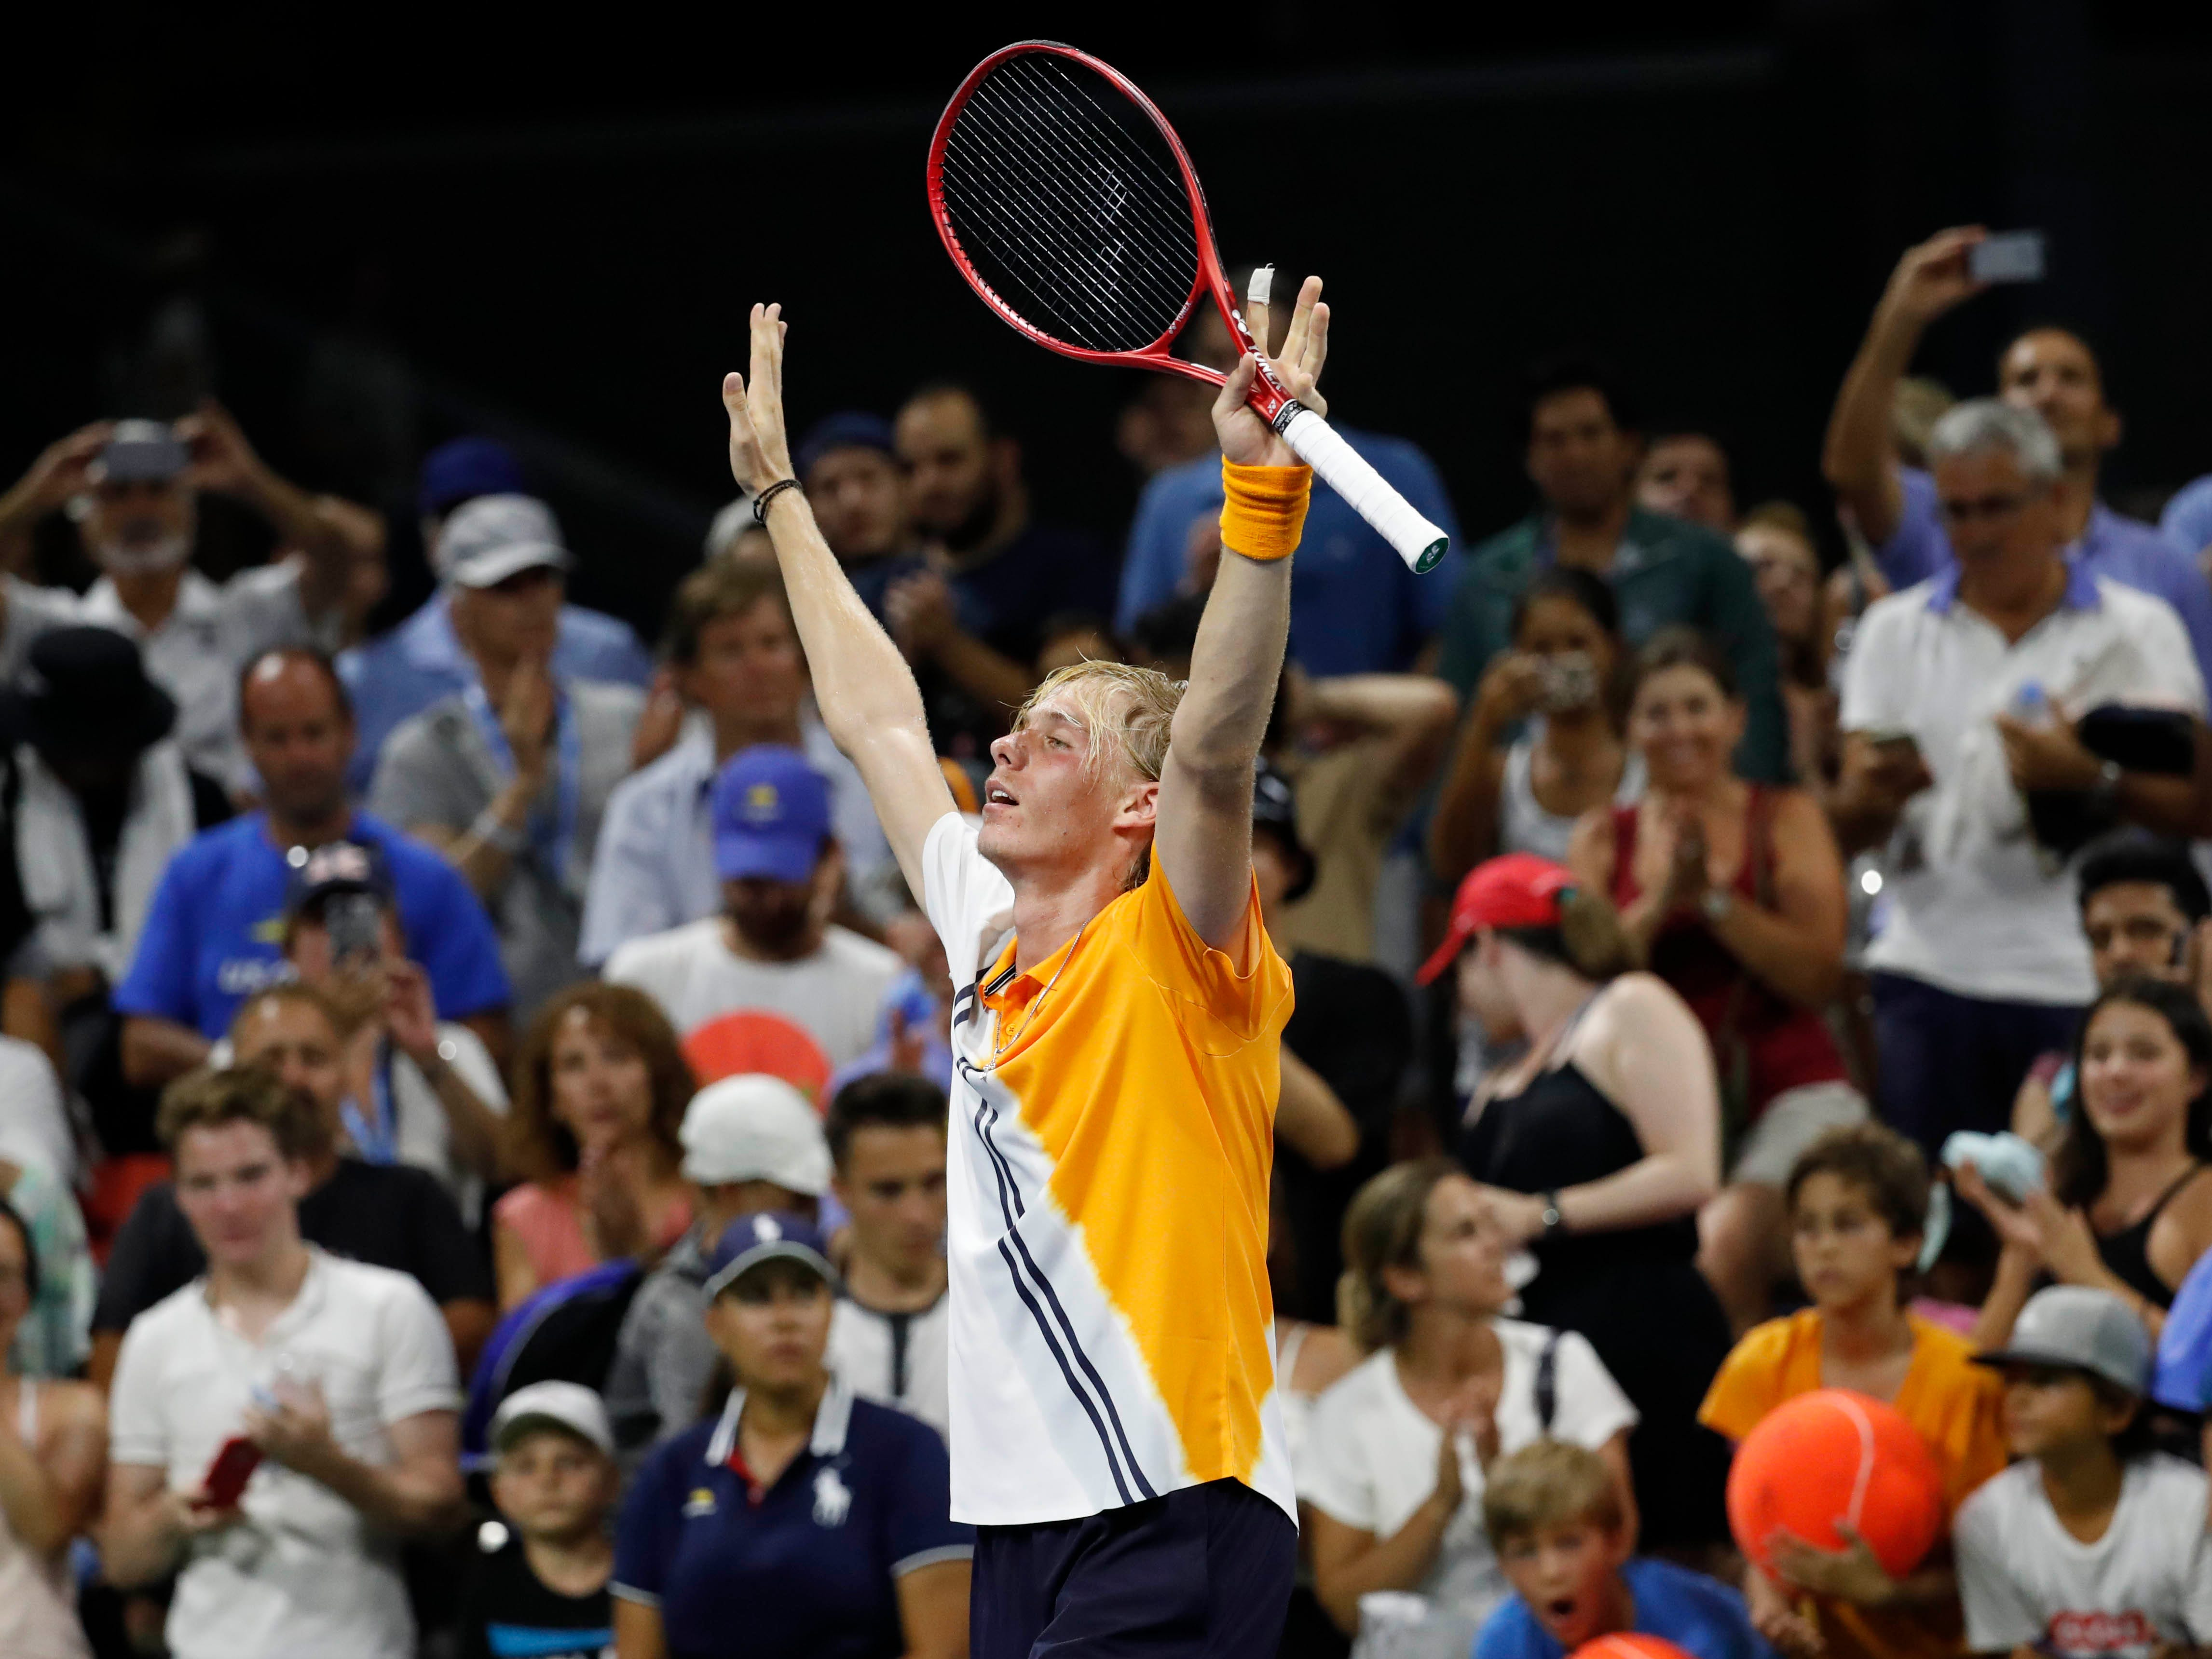 Denis Shapovalov of Canada celebrates after defeating Andreas Seppi of Italy in a five-set marathon.